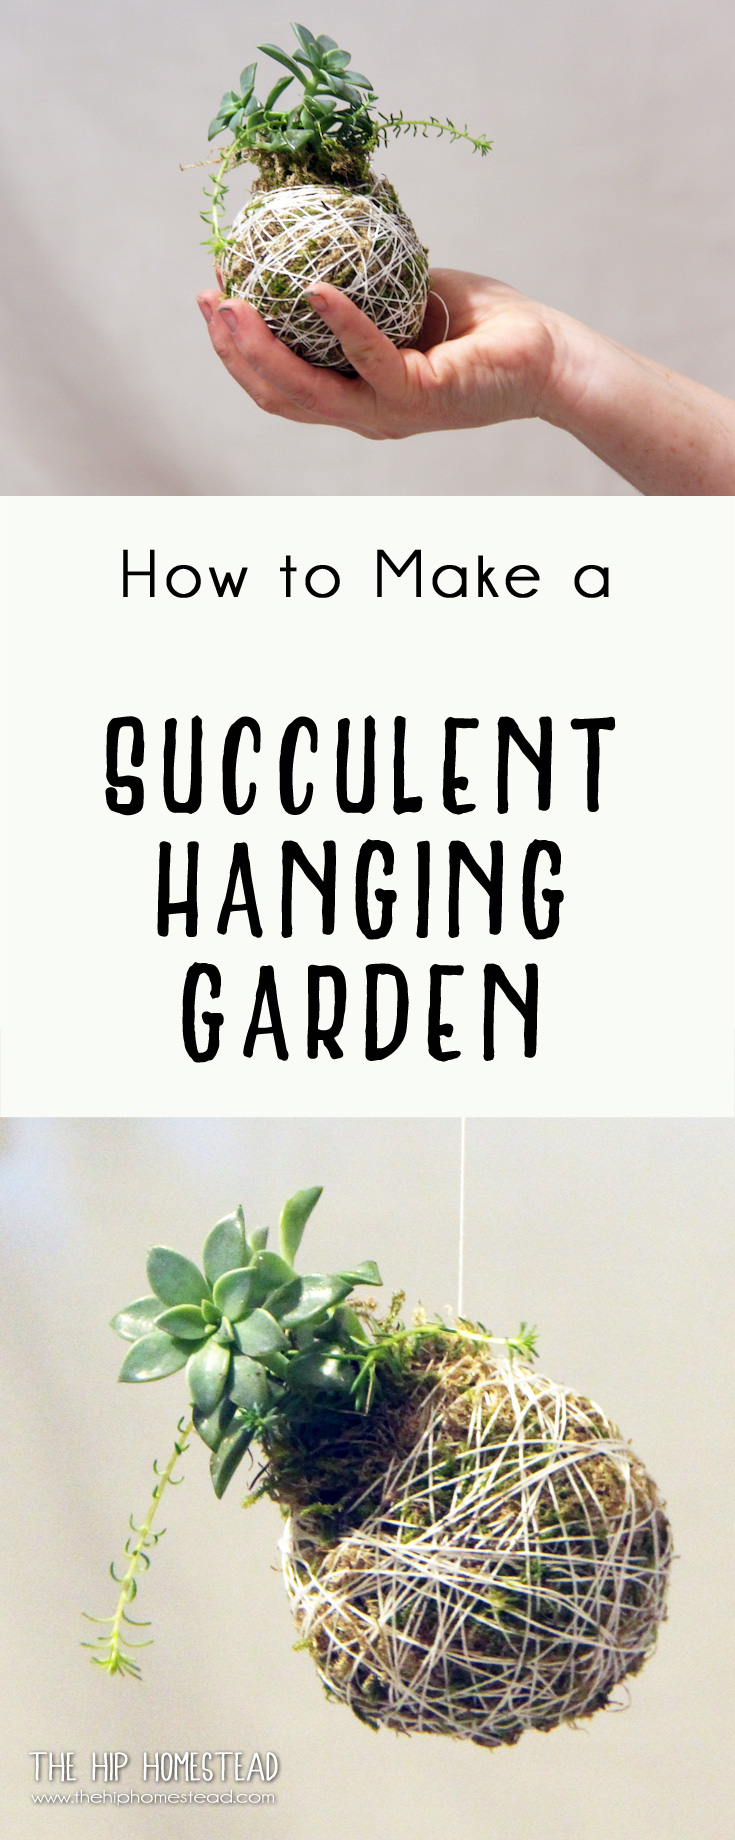 How To Make A Hanging Succulent Garden The Hip Homestead